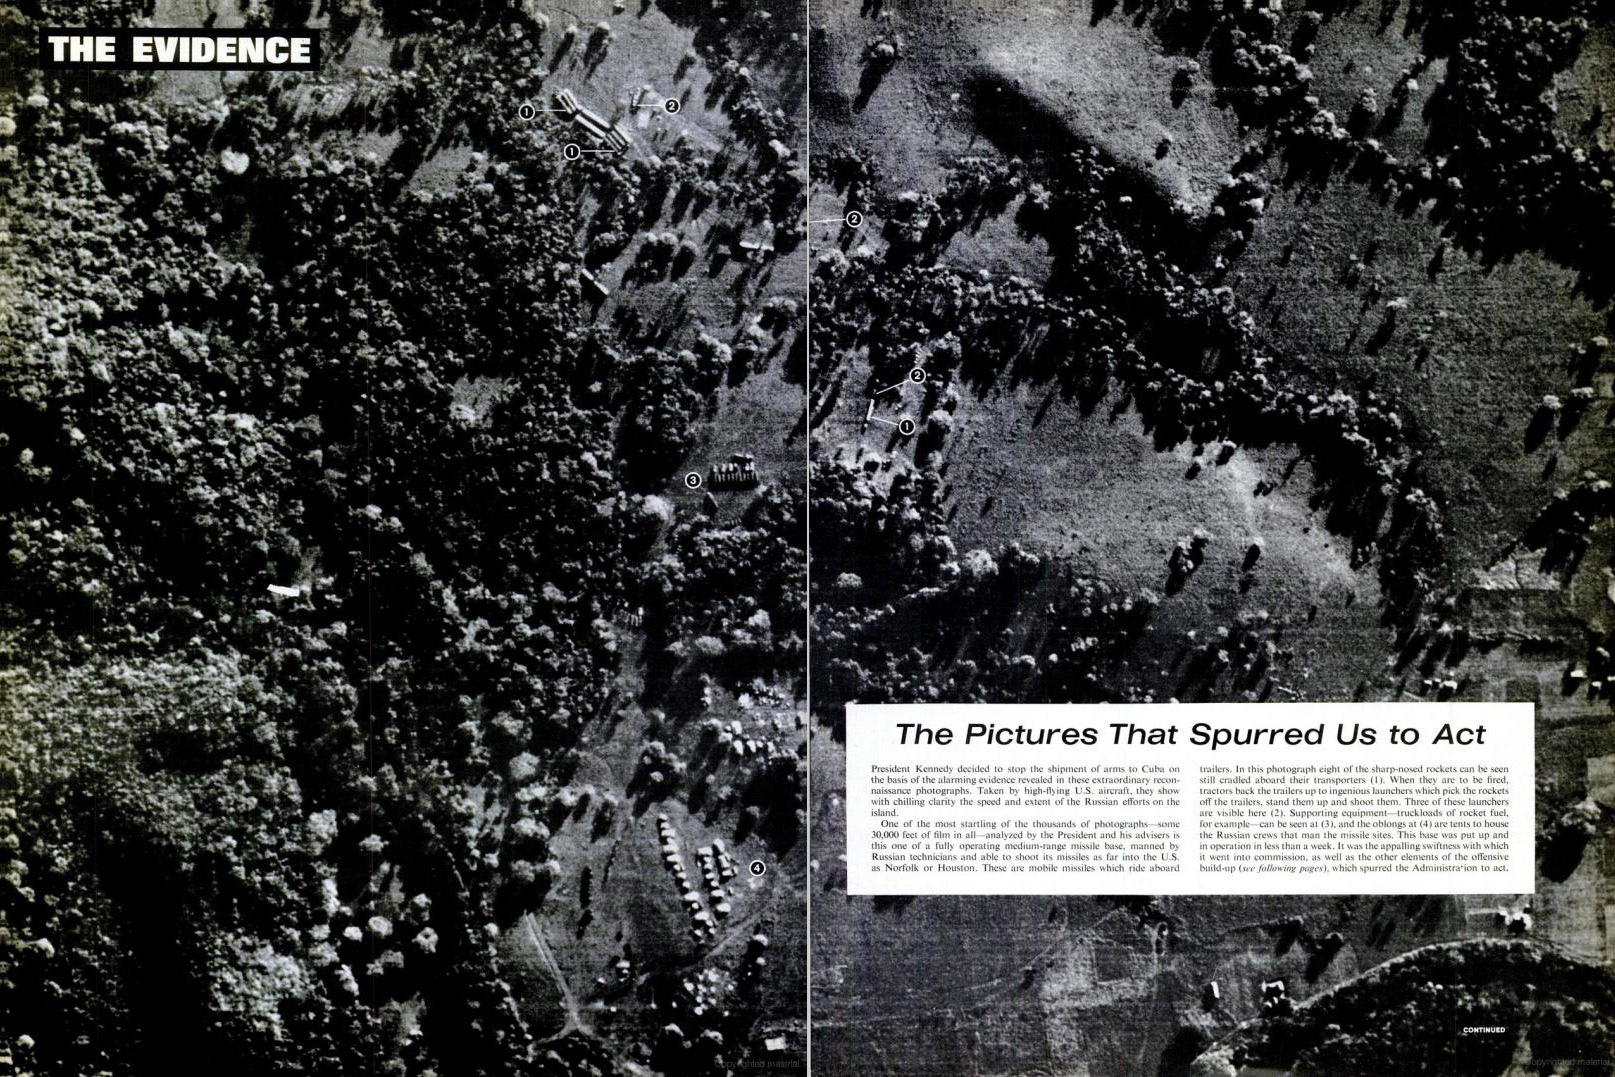 November 2, 1962 issue of LIFE magazine. Spread shows photographs taken by a U.S. spy plan confirming the presence of Soviet missiles on Cuban soil.